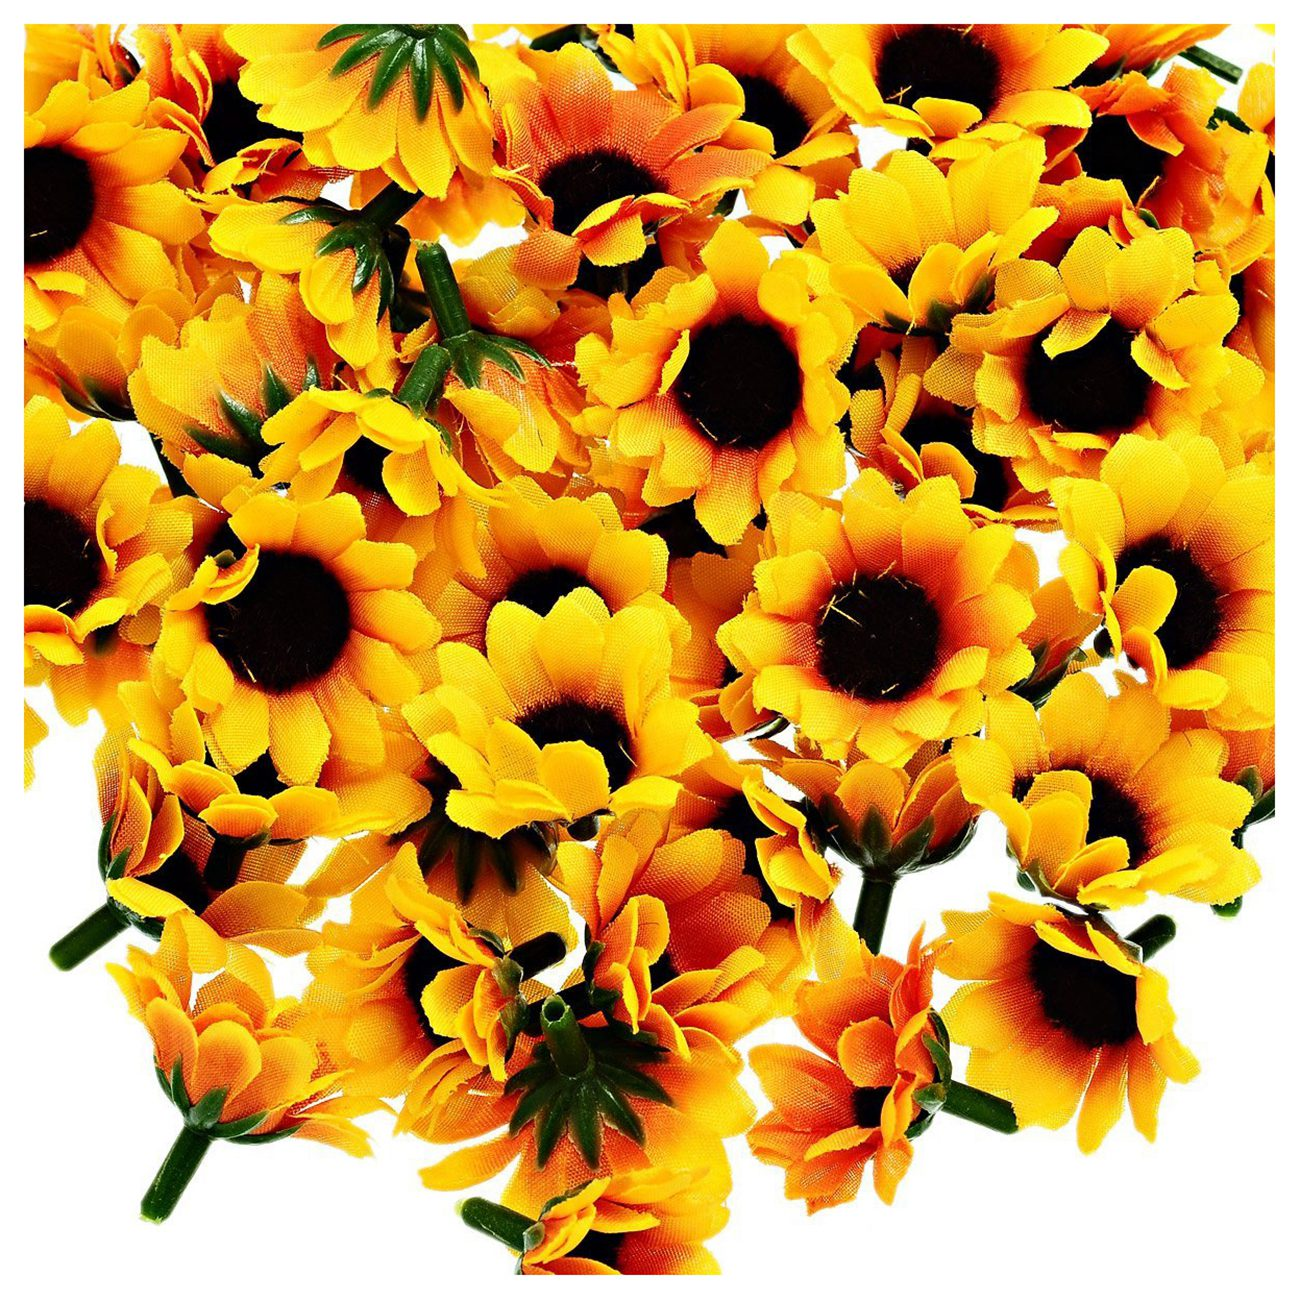 Practical boutique 100 pcs artificial sunflower little daisy gerbera flower heads for wedding party decor yellowcoffee in artificial dried practical boutique 100 pcs artificial sunflower little daisy gerbera flower heads for wedding party decor yellowcoff